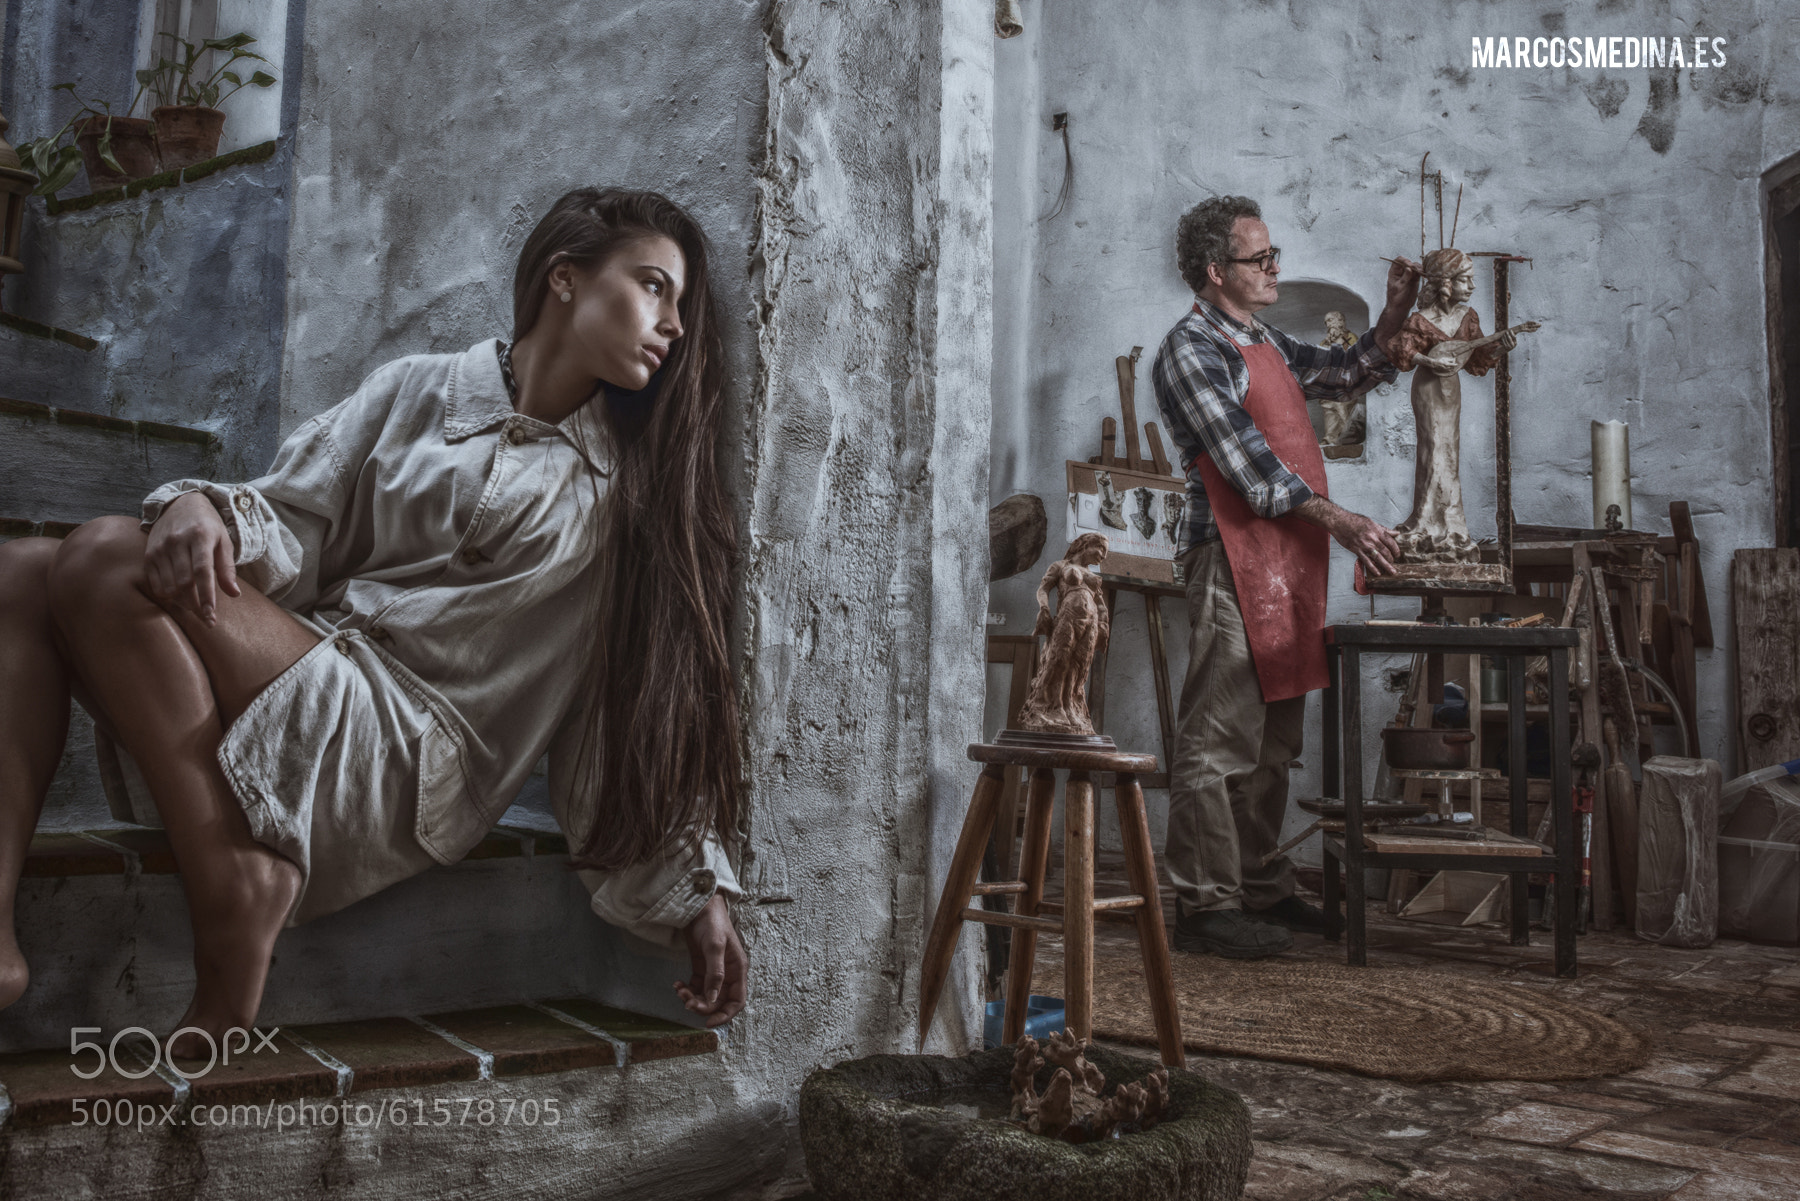 the sculptor of women by Marcos Medina